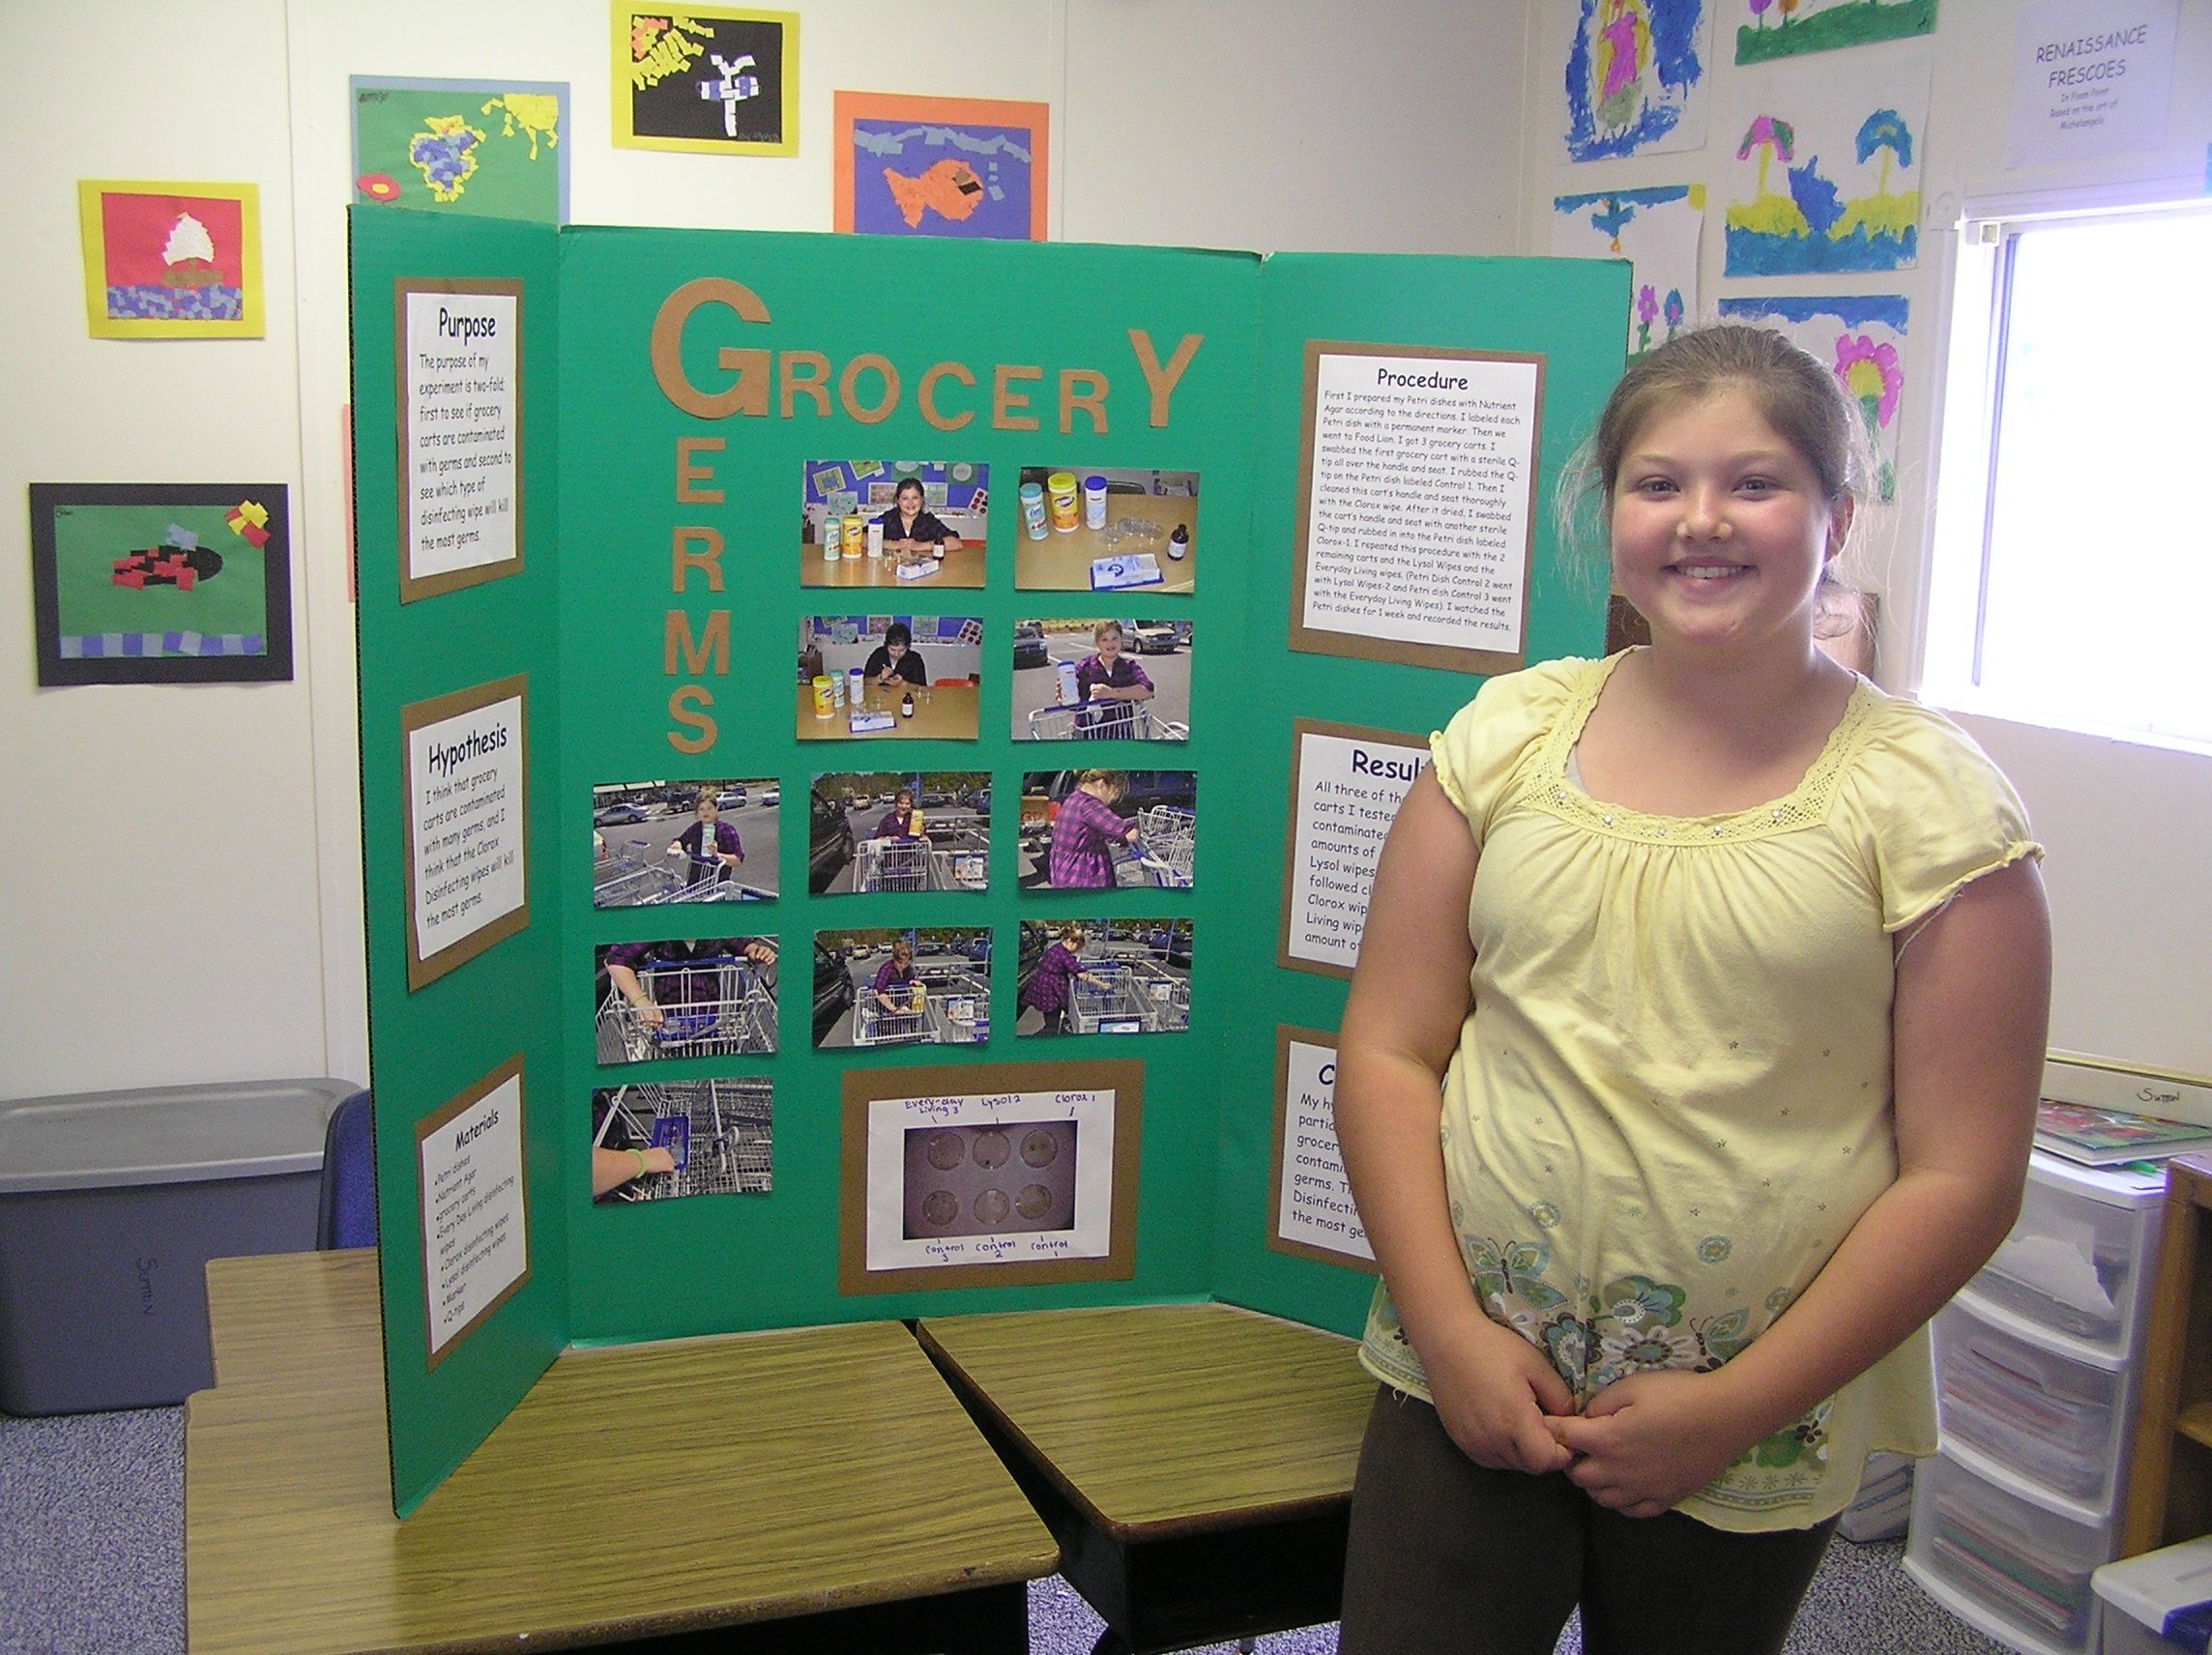 10 Most Popular Ideas For Science Fair Projects For 4Th Graders grocery germs whats on that cart handle science fair 5 2020